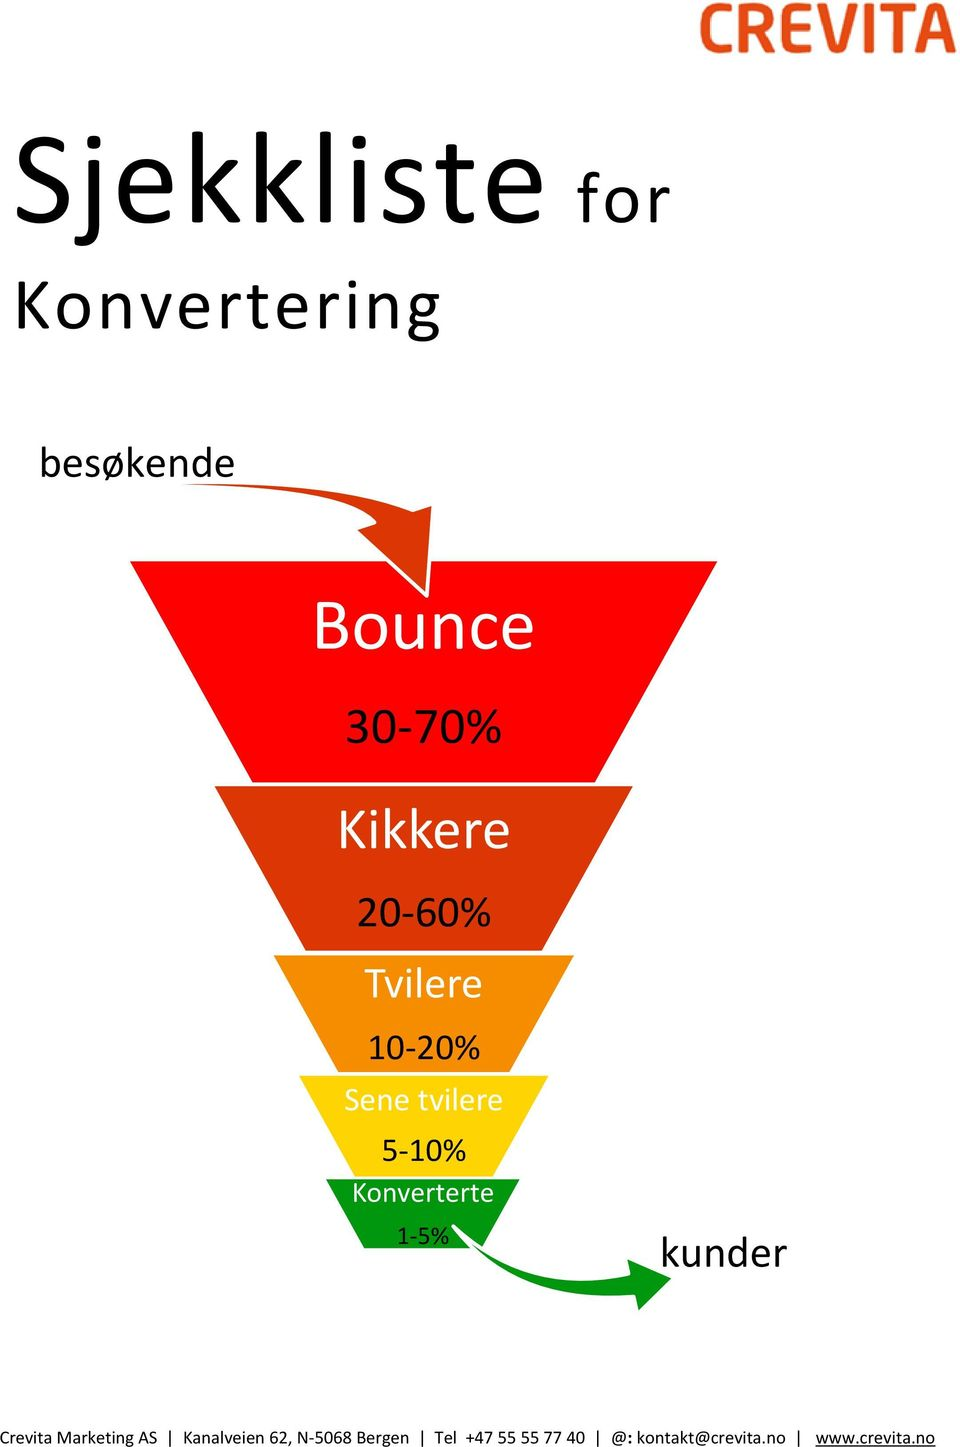 Konverterte 1-5% kunder Crevita Marketing AS Kanalveien